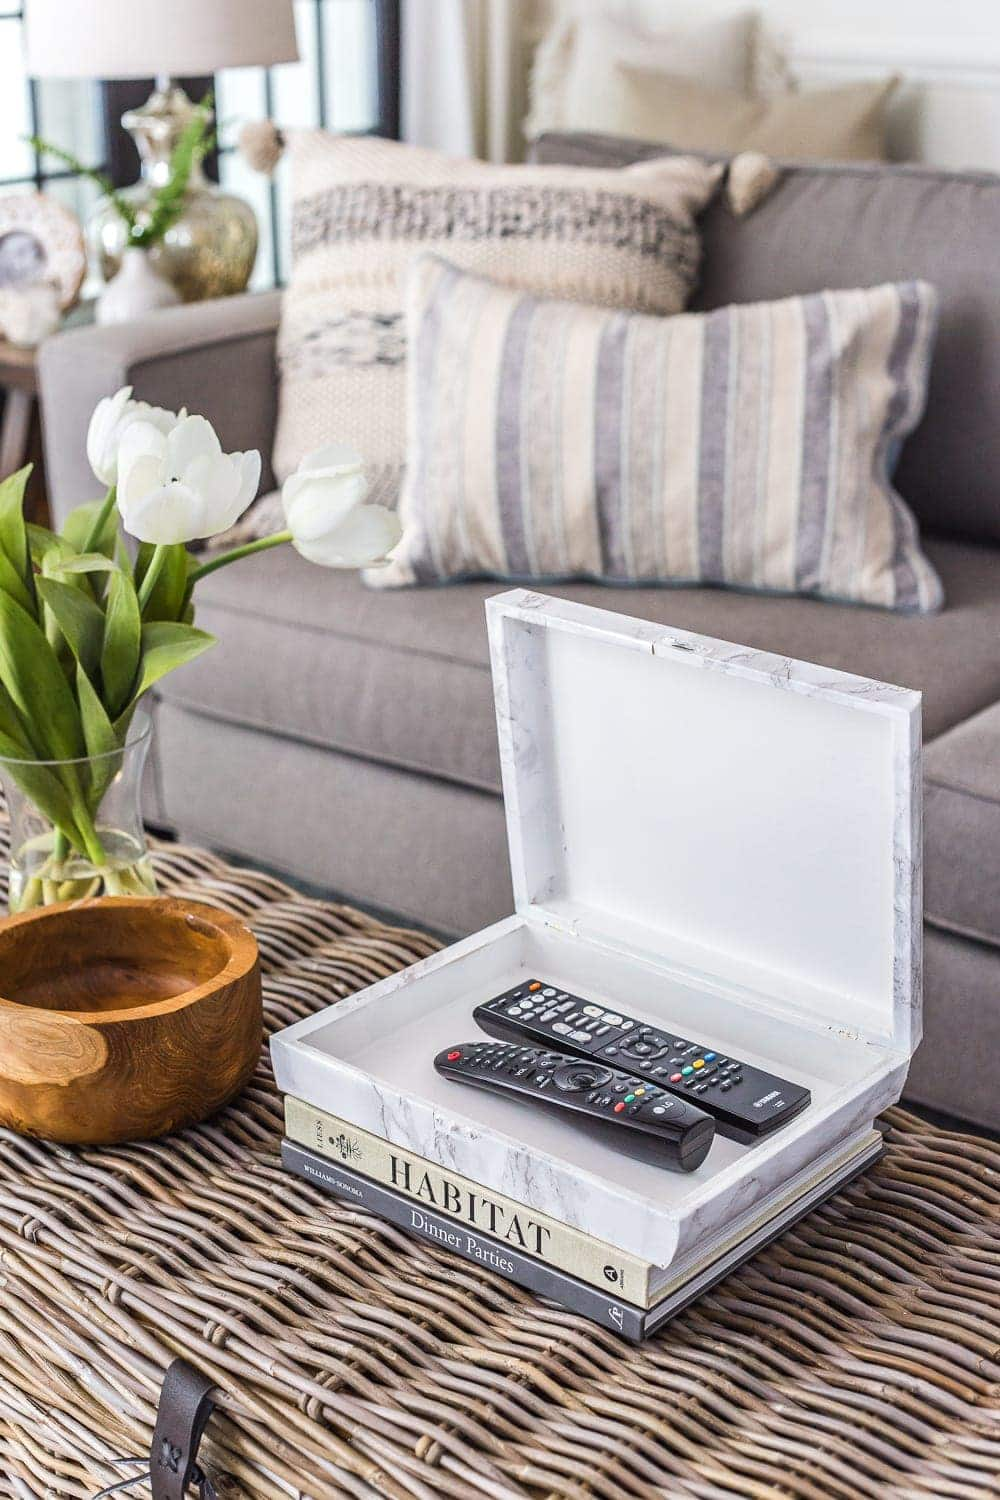 remote control holder on a coffee table